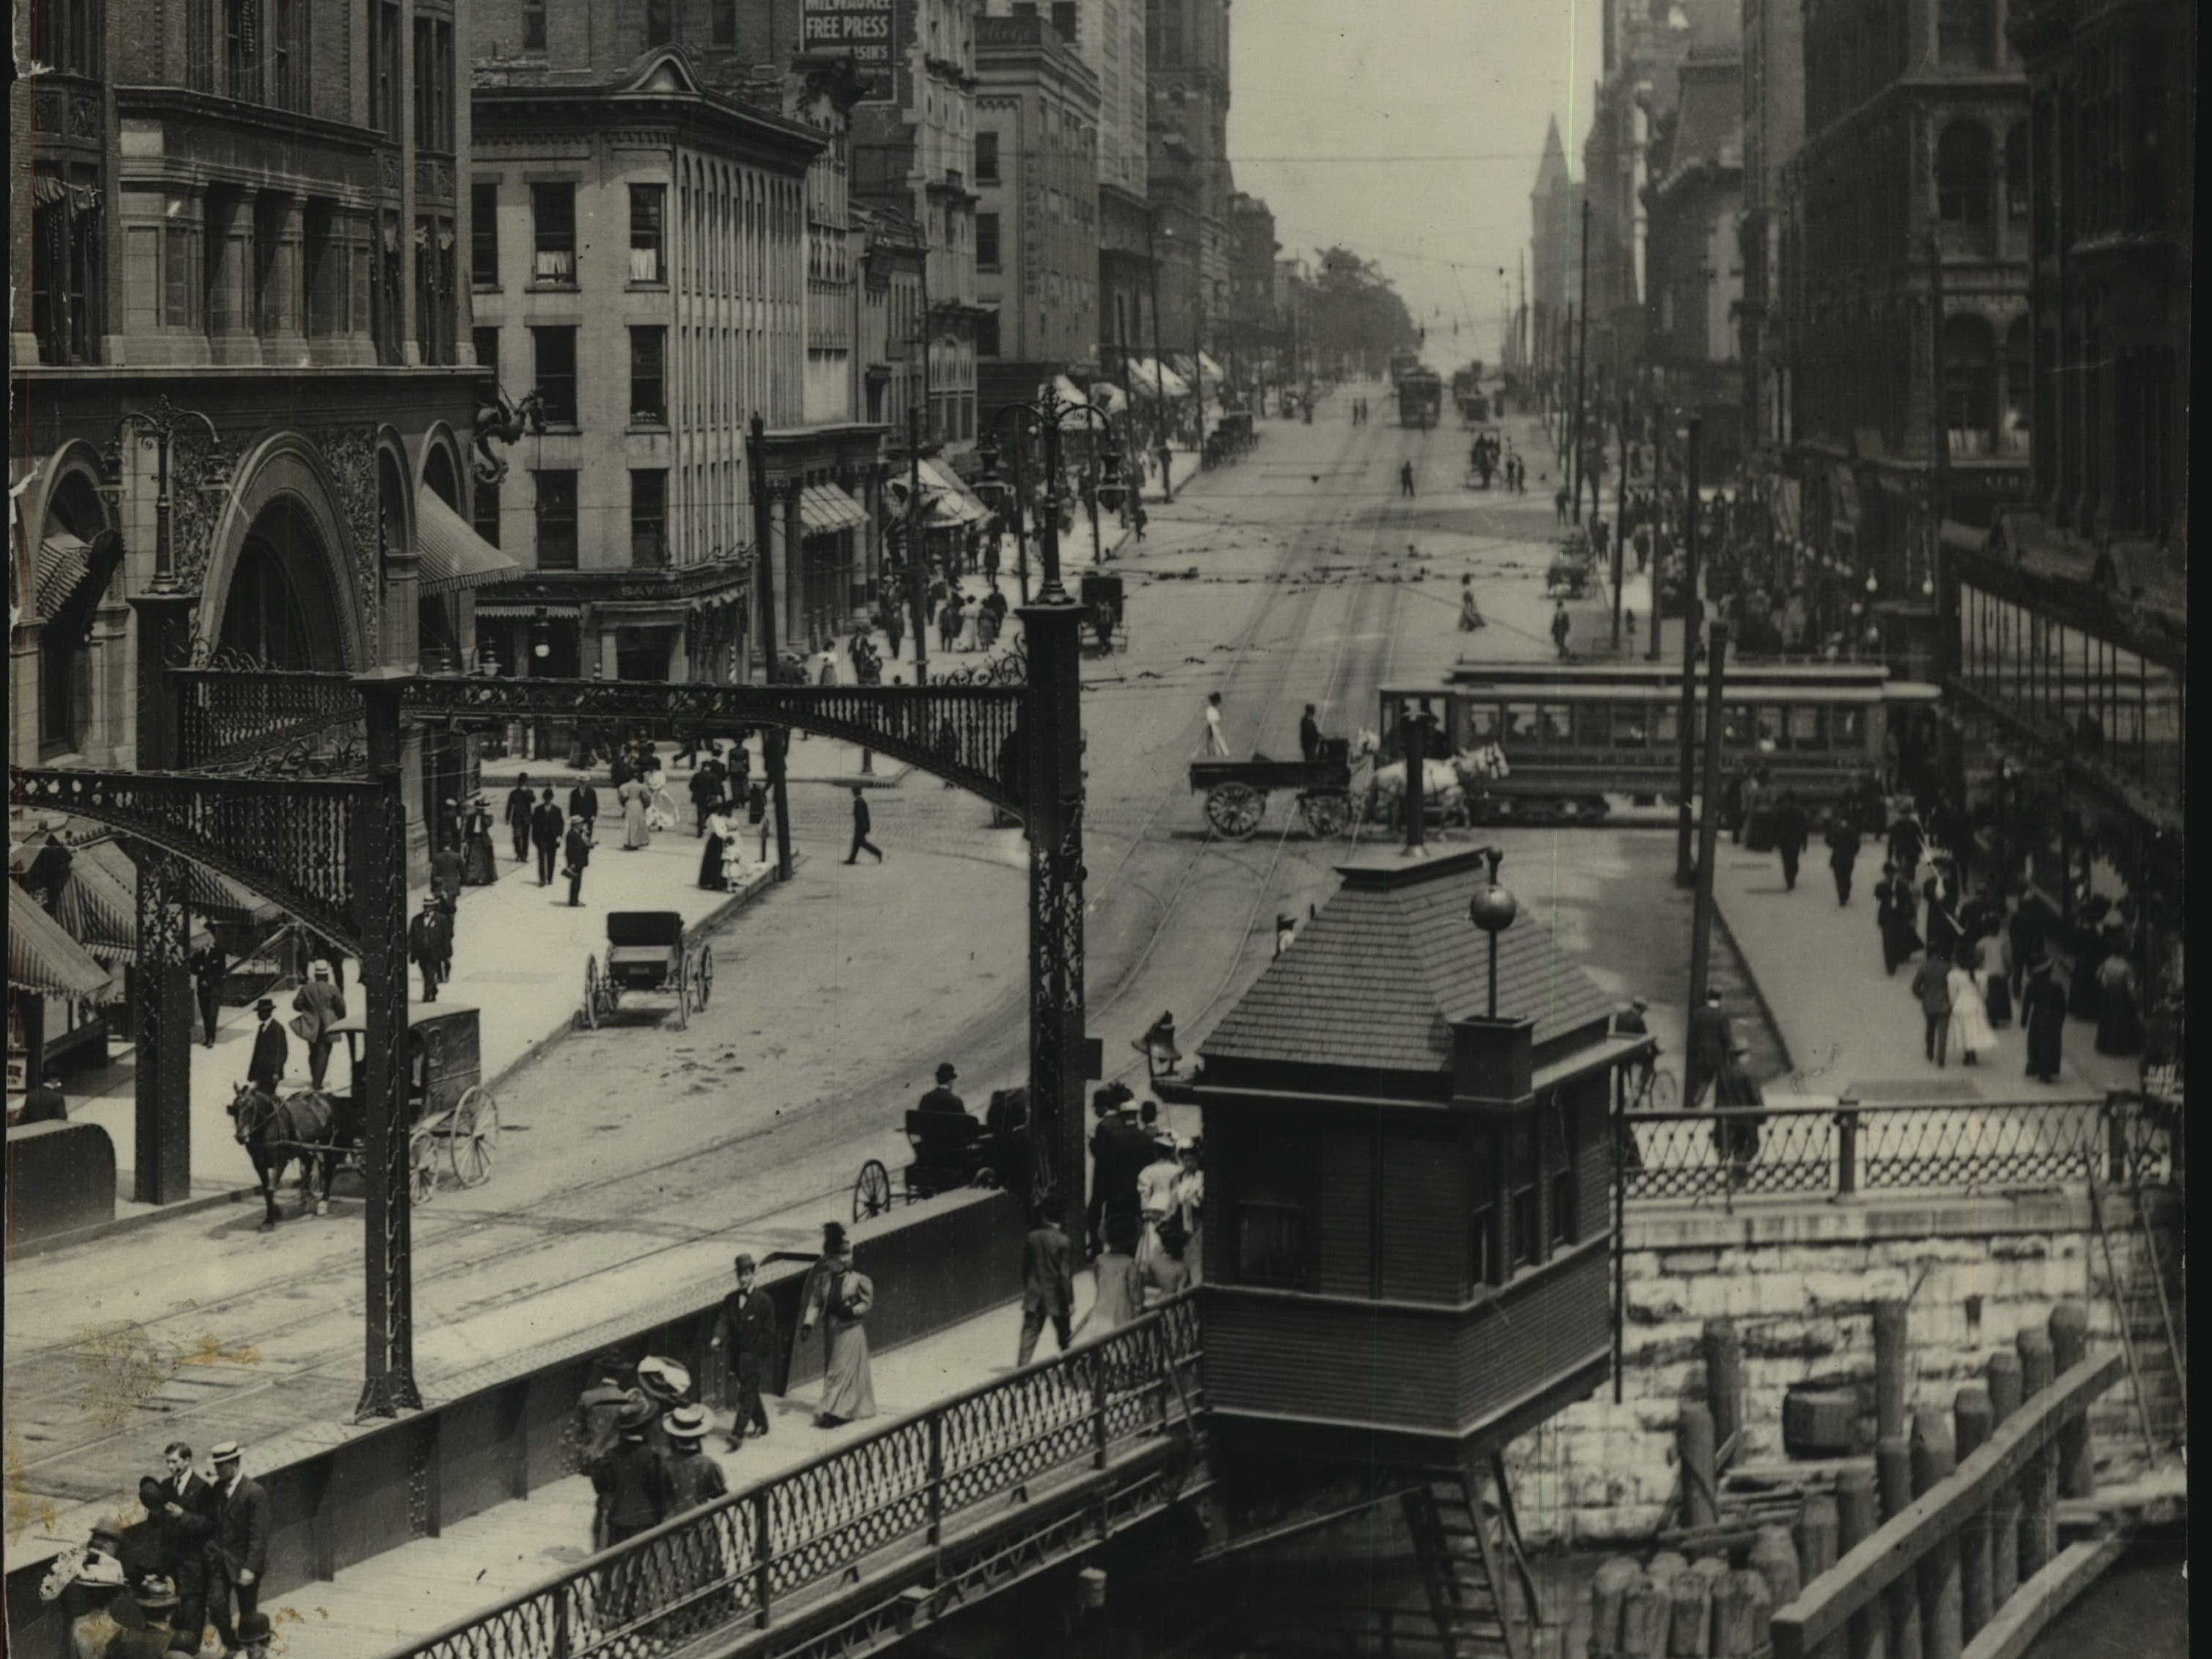 1905: Looking east from the river, the federal courthouse is visible in the distance on the right.